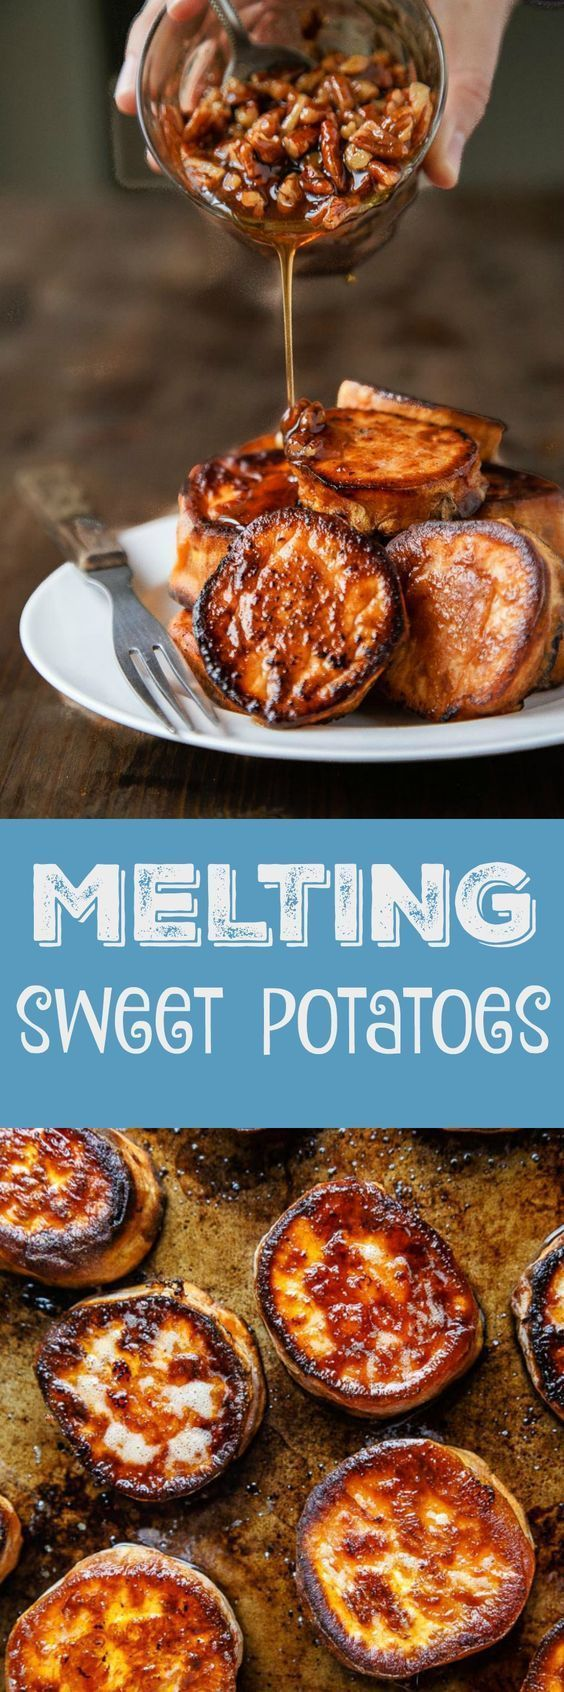 Melting Sweet Potatoes (with Maple-Pecan Sauce) Recipe | Dessert for Two The BEST Classic Improved and Traditional Th #Mainmealsforvegetarians